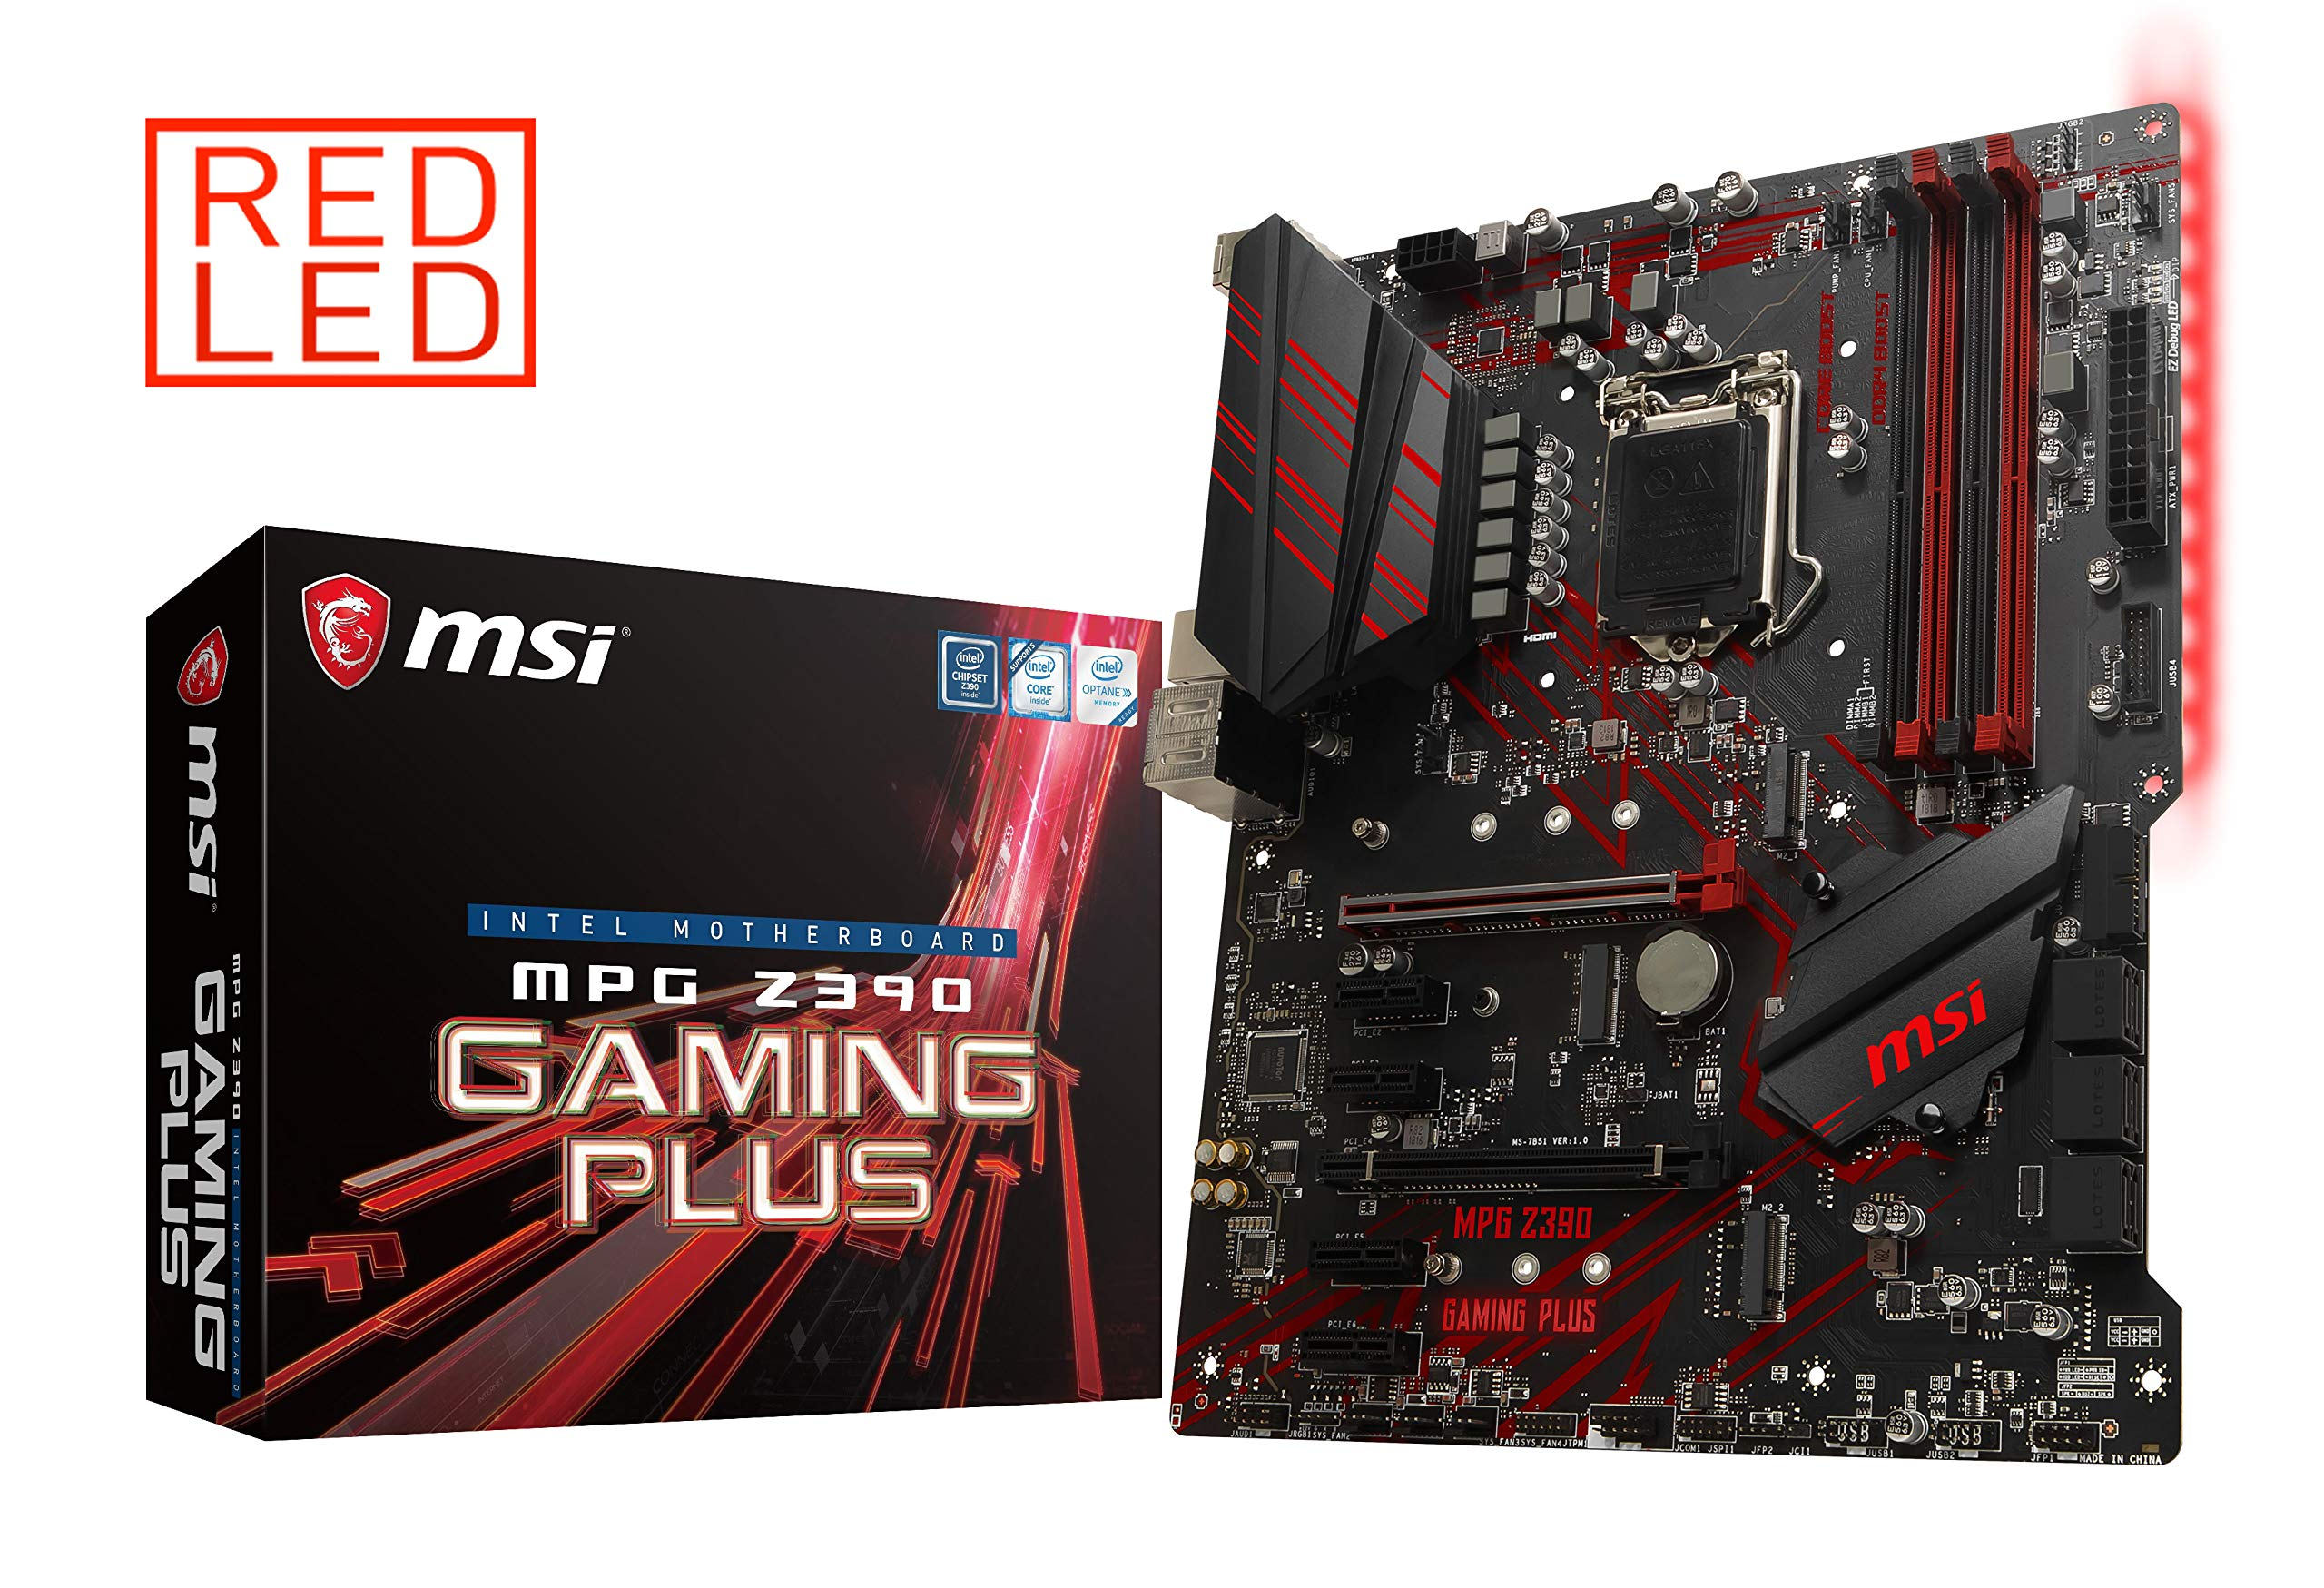 MSI MPG Z390 Gaming Plus LGA1151 (Intel 8th and 9th Gen) M.2 USB 3.1 Gen 2 DDR4 HDMI DVI CFX ATX Z390 Gaming Motherboard by MSI